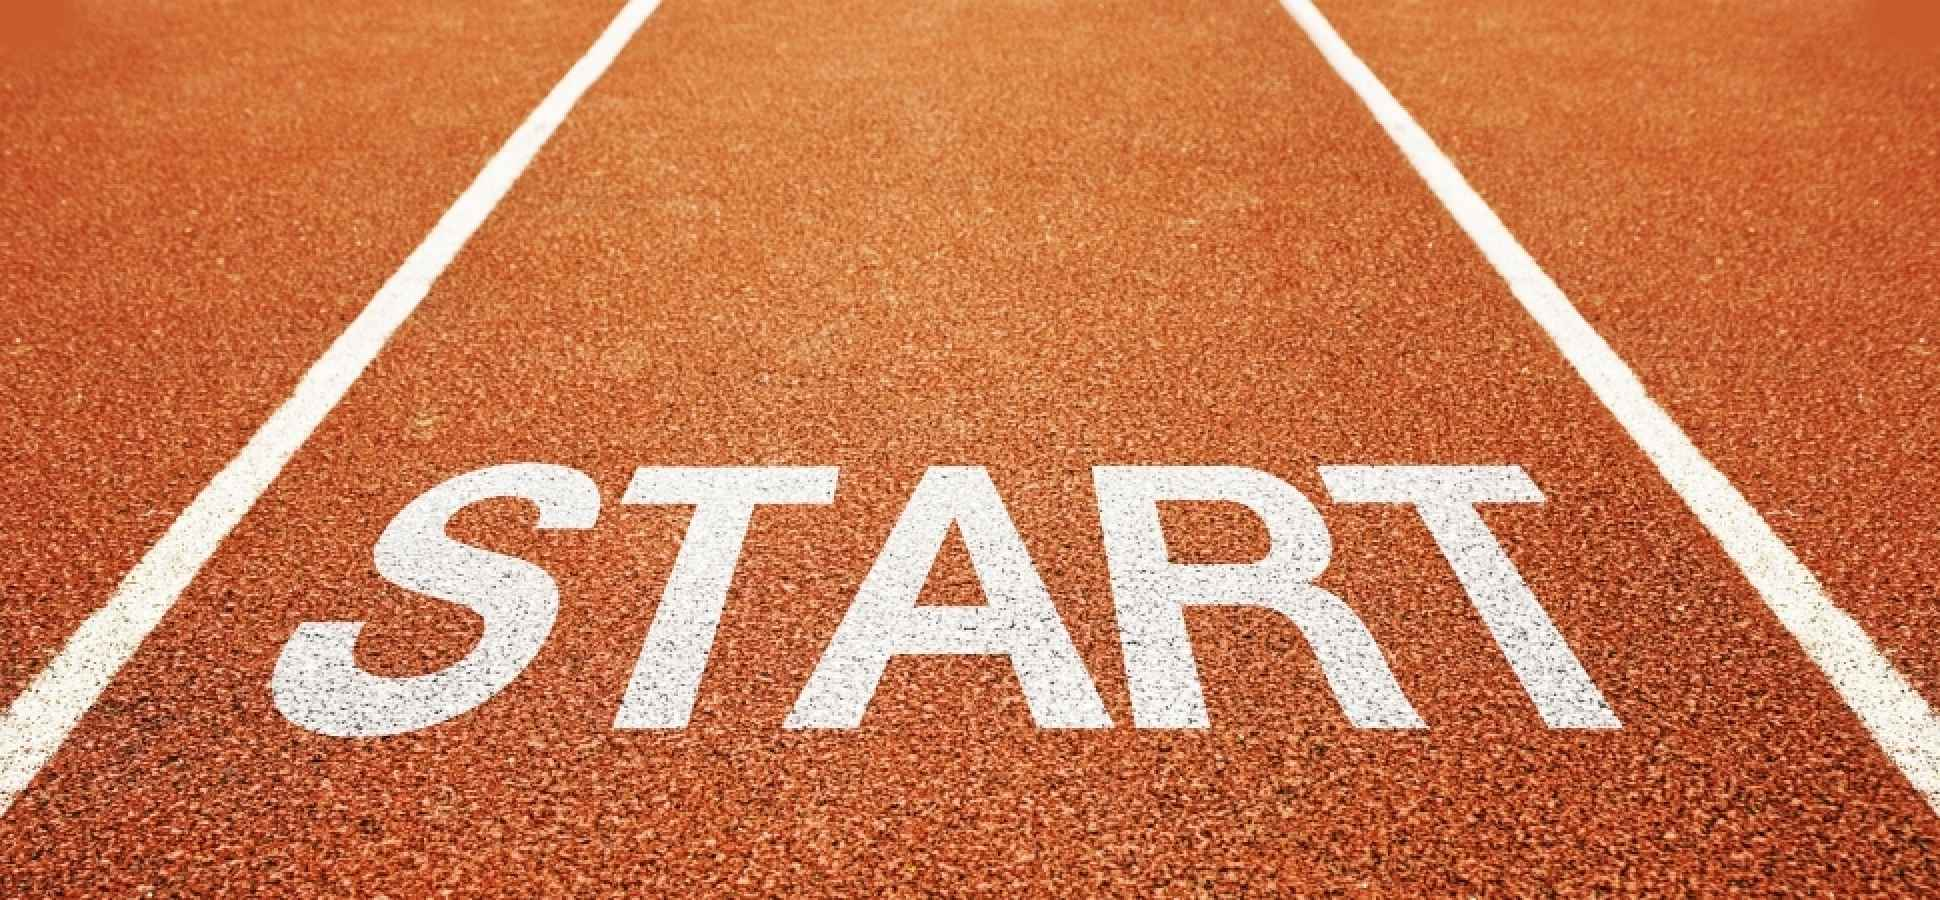 10 Best Ways to Start a Company